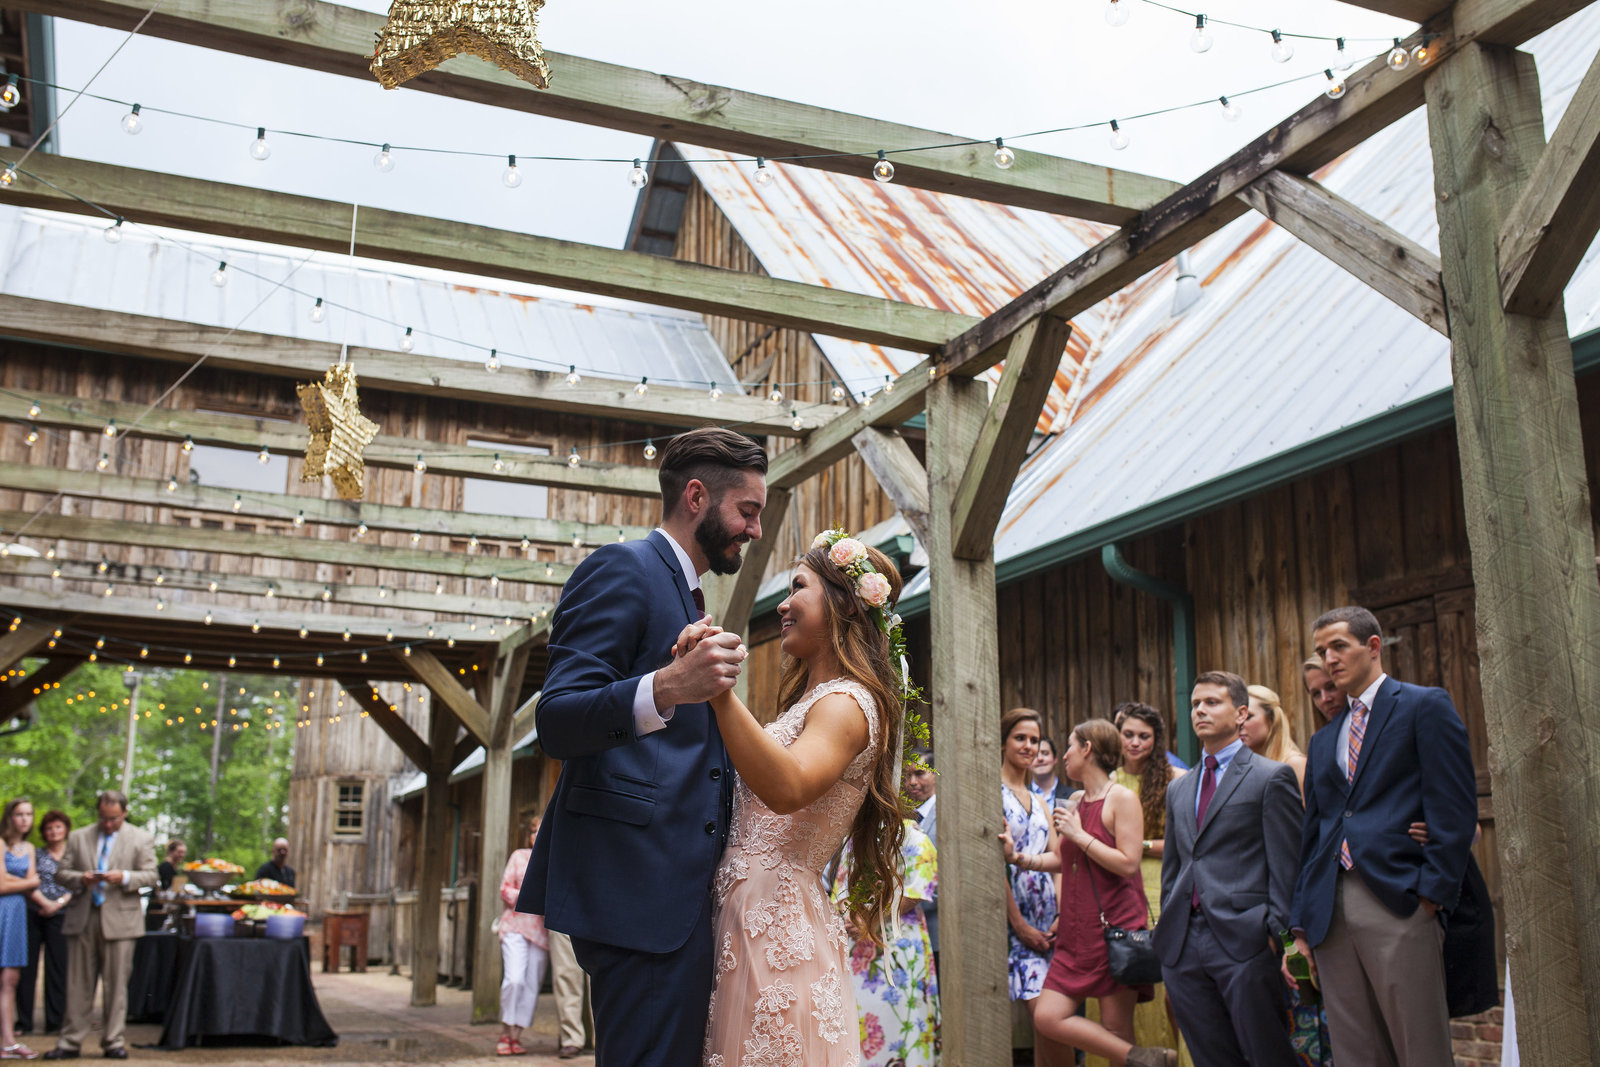 The barn wedding